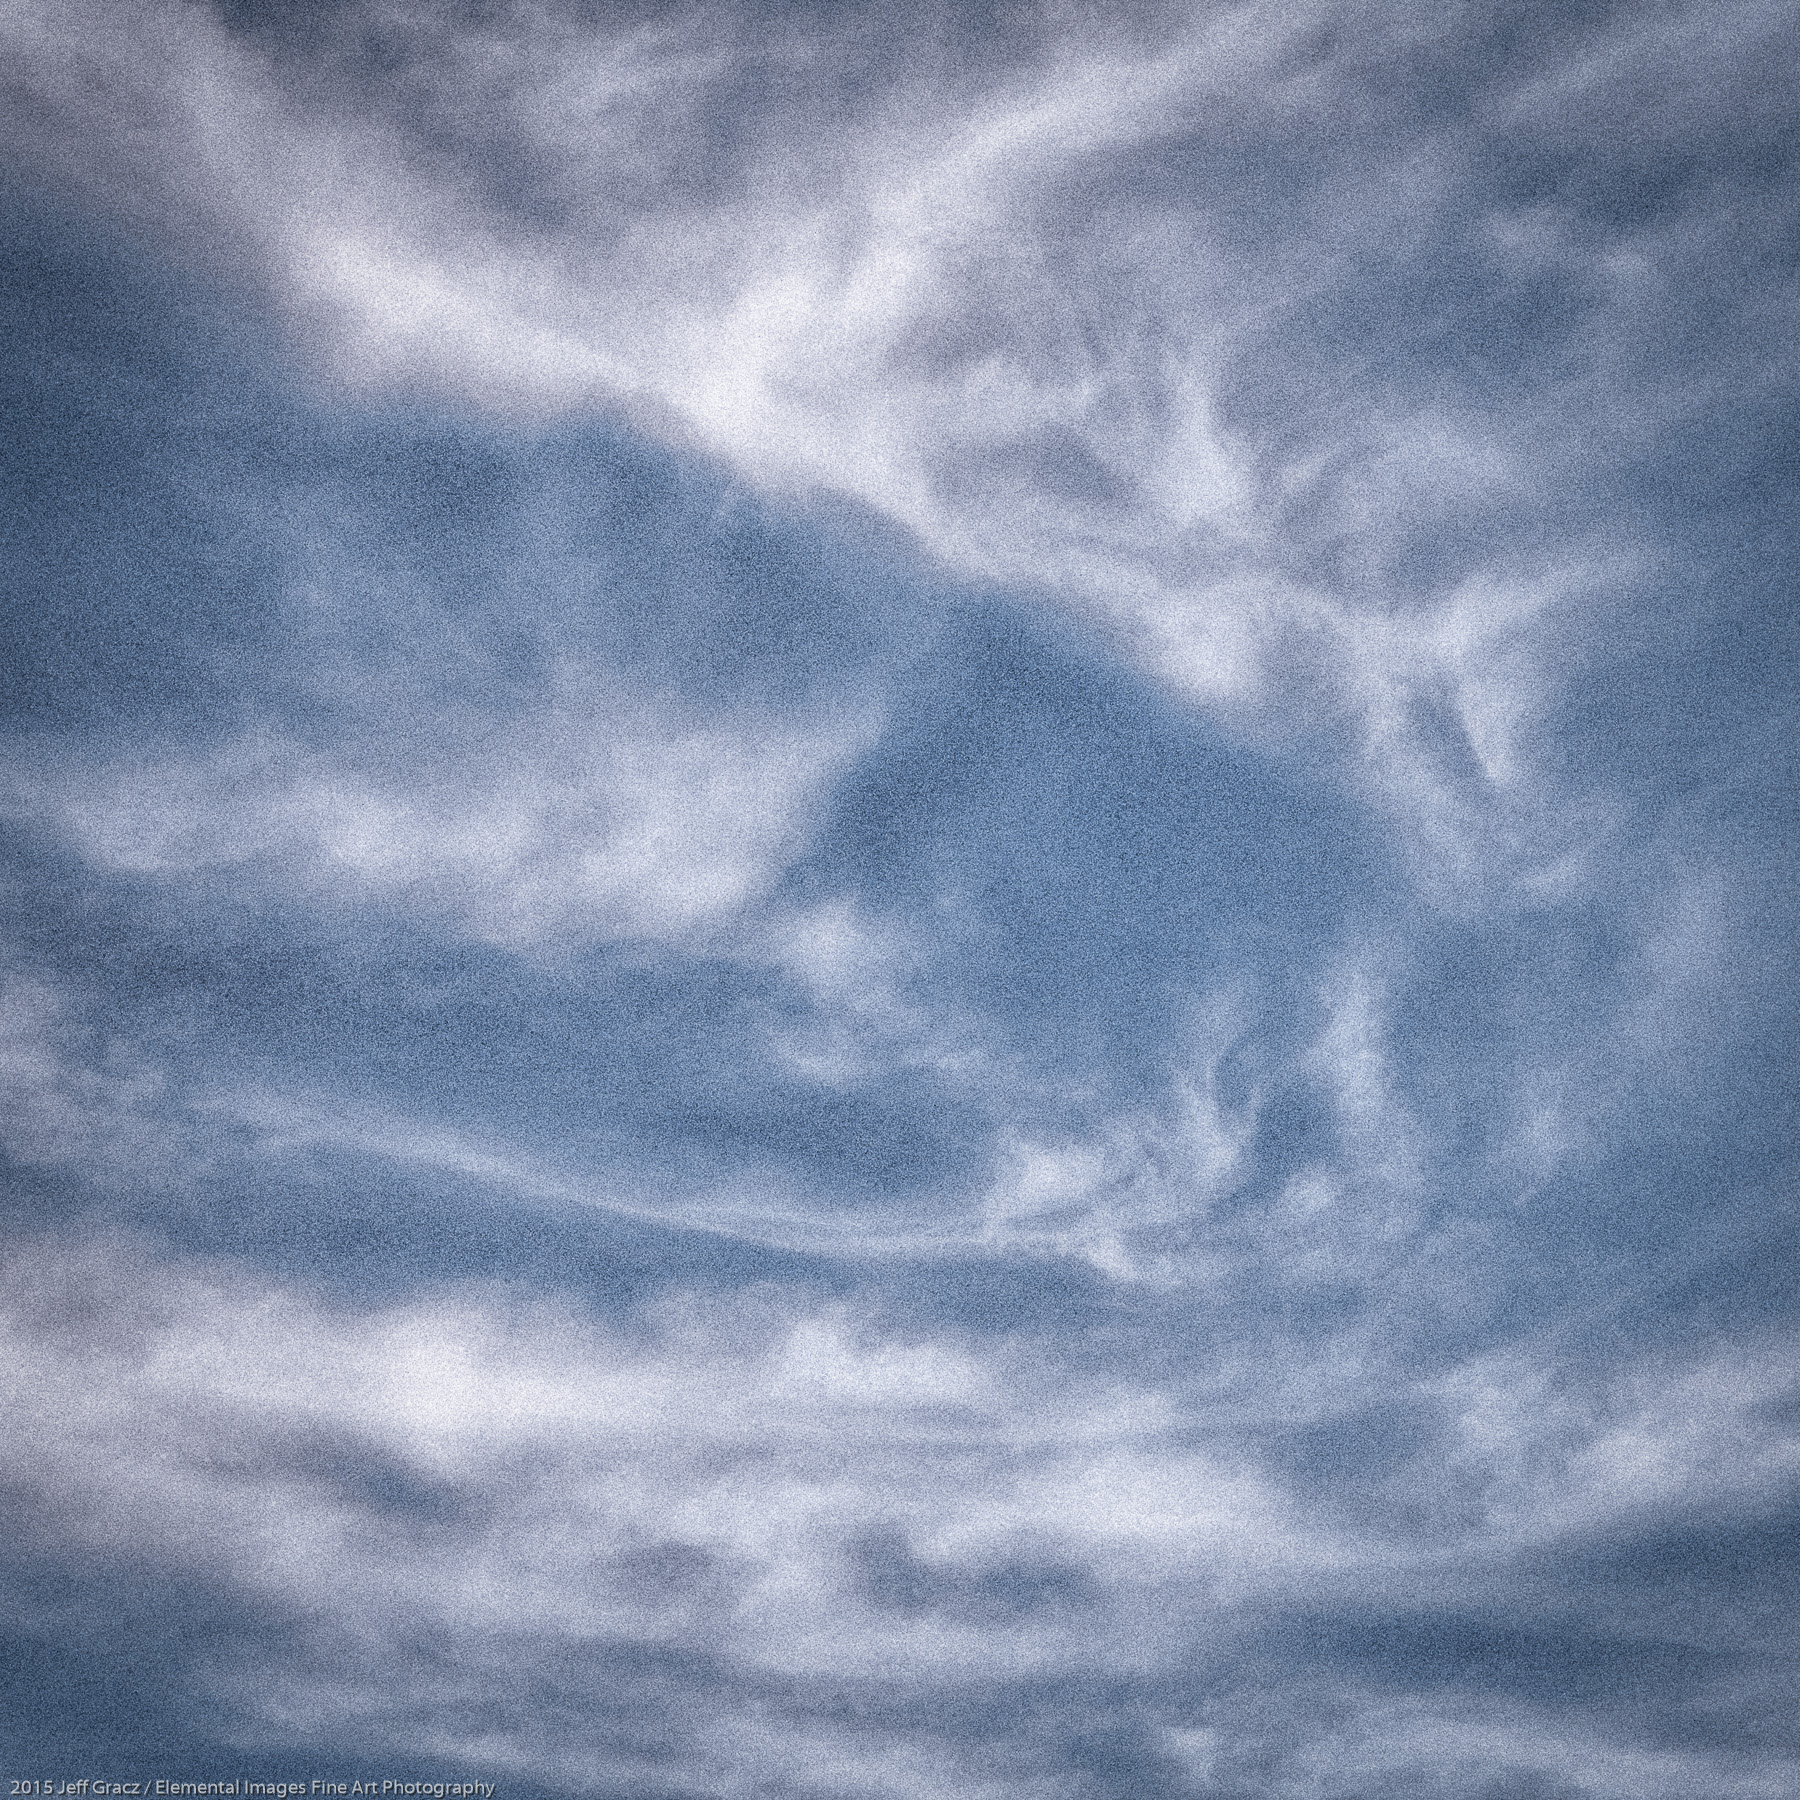 Skyscapes #3 | Vancouver | WA | USA - © 2015 Jeff Gracz / Elemental Images Fine Art Photography - All Rights Reserved Worldwide